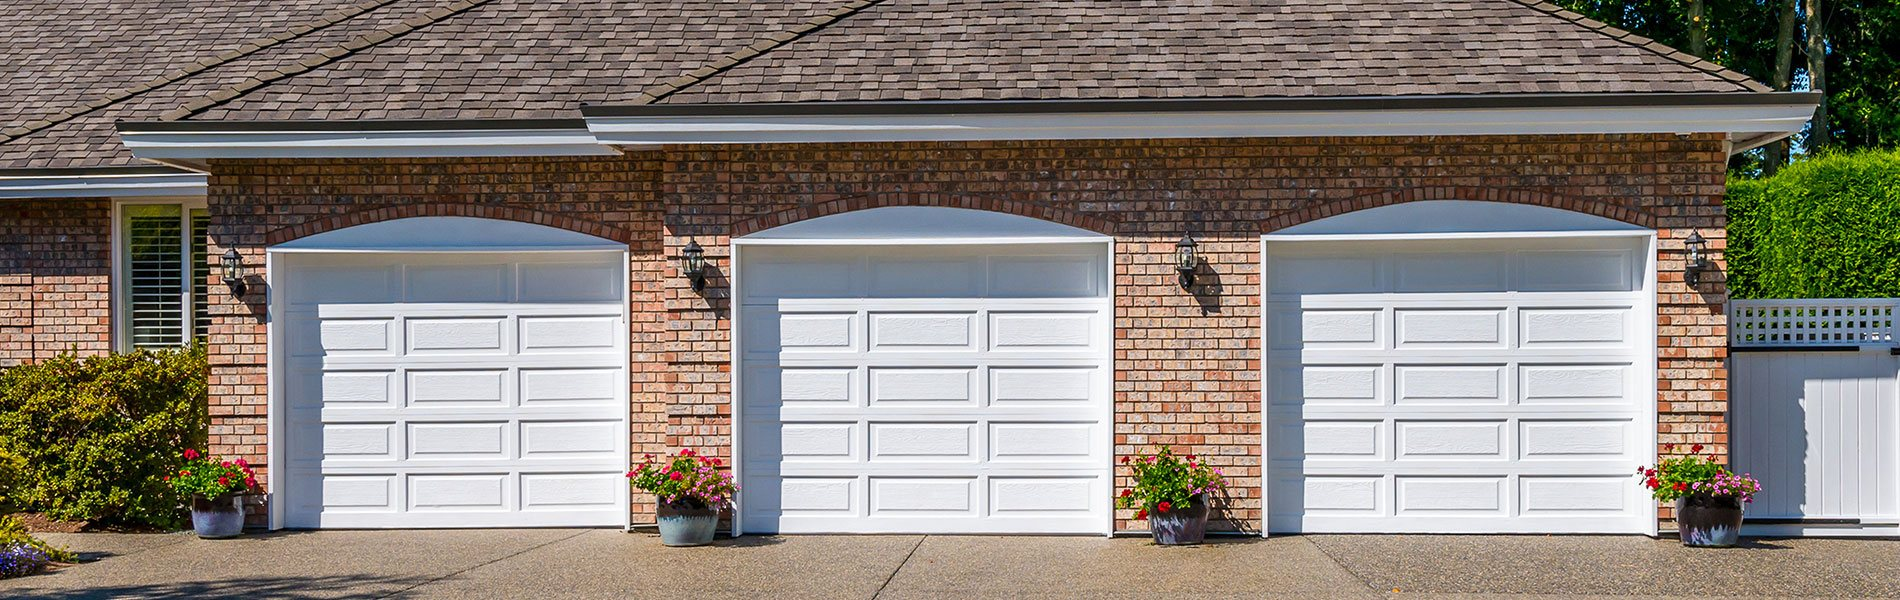 Galaxy Garage Door Service, Inglewood, CA 310-750-1005